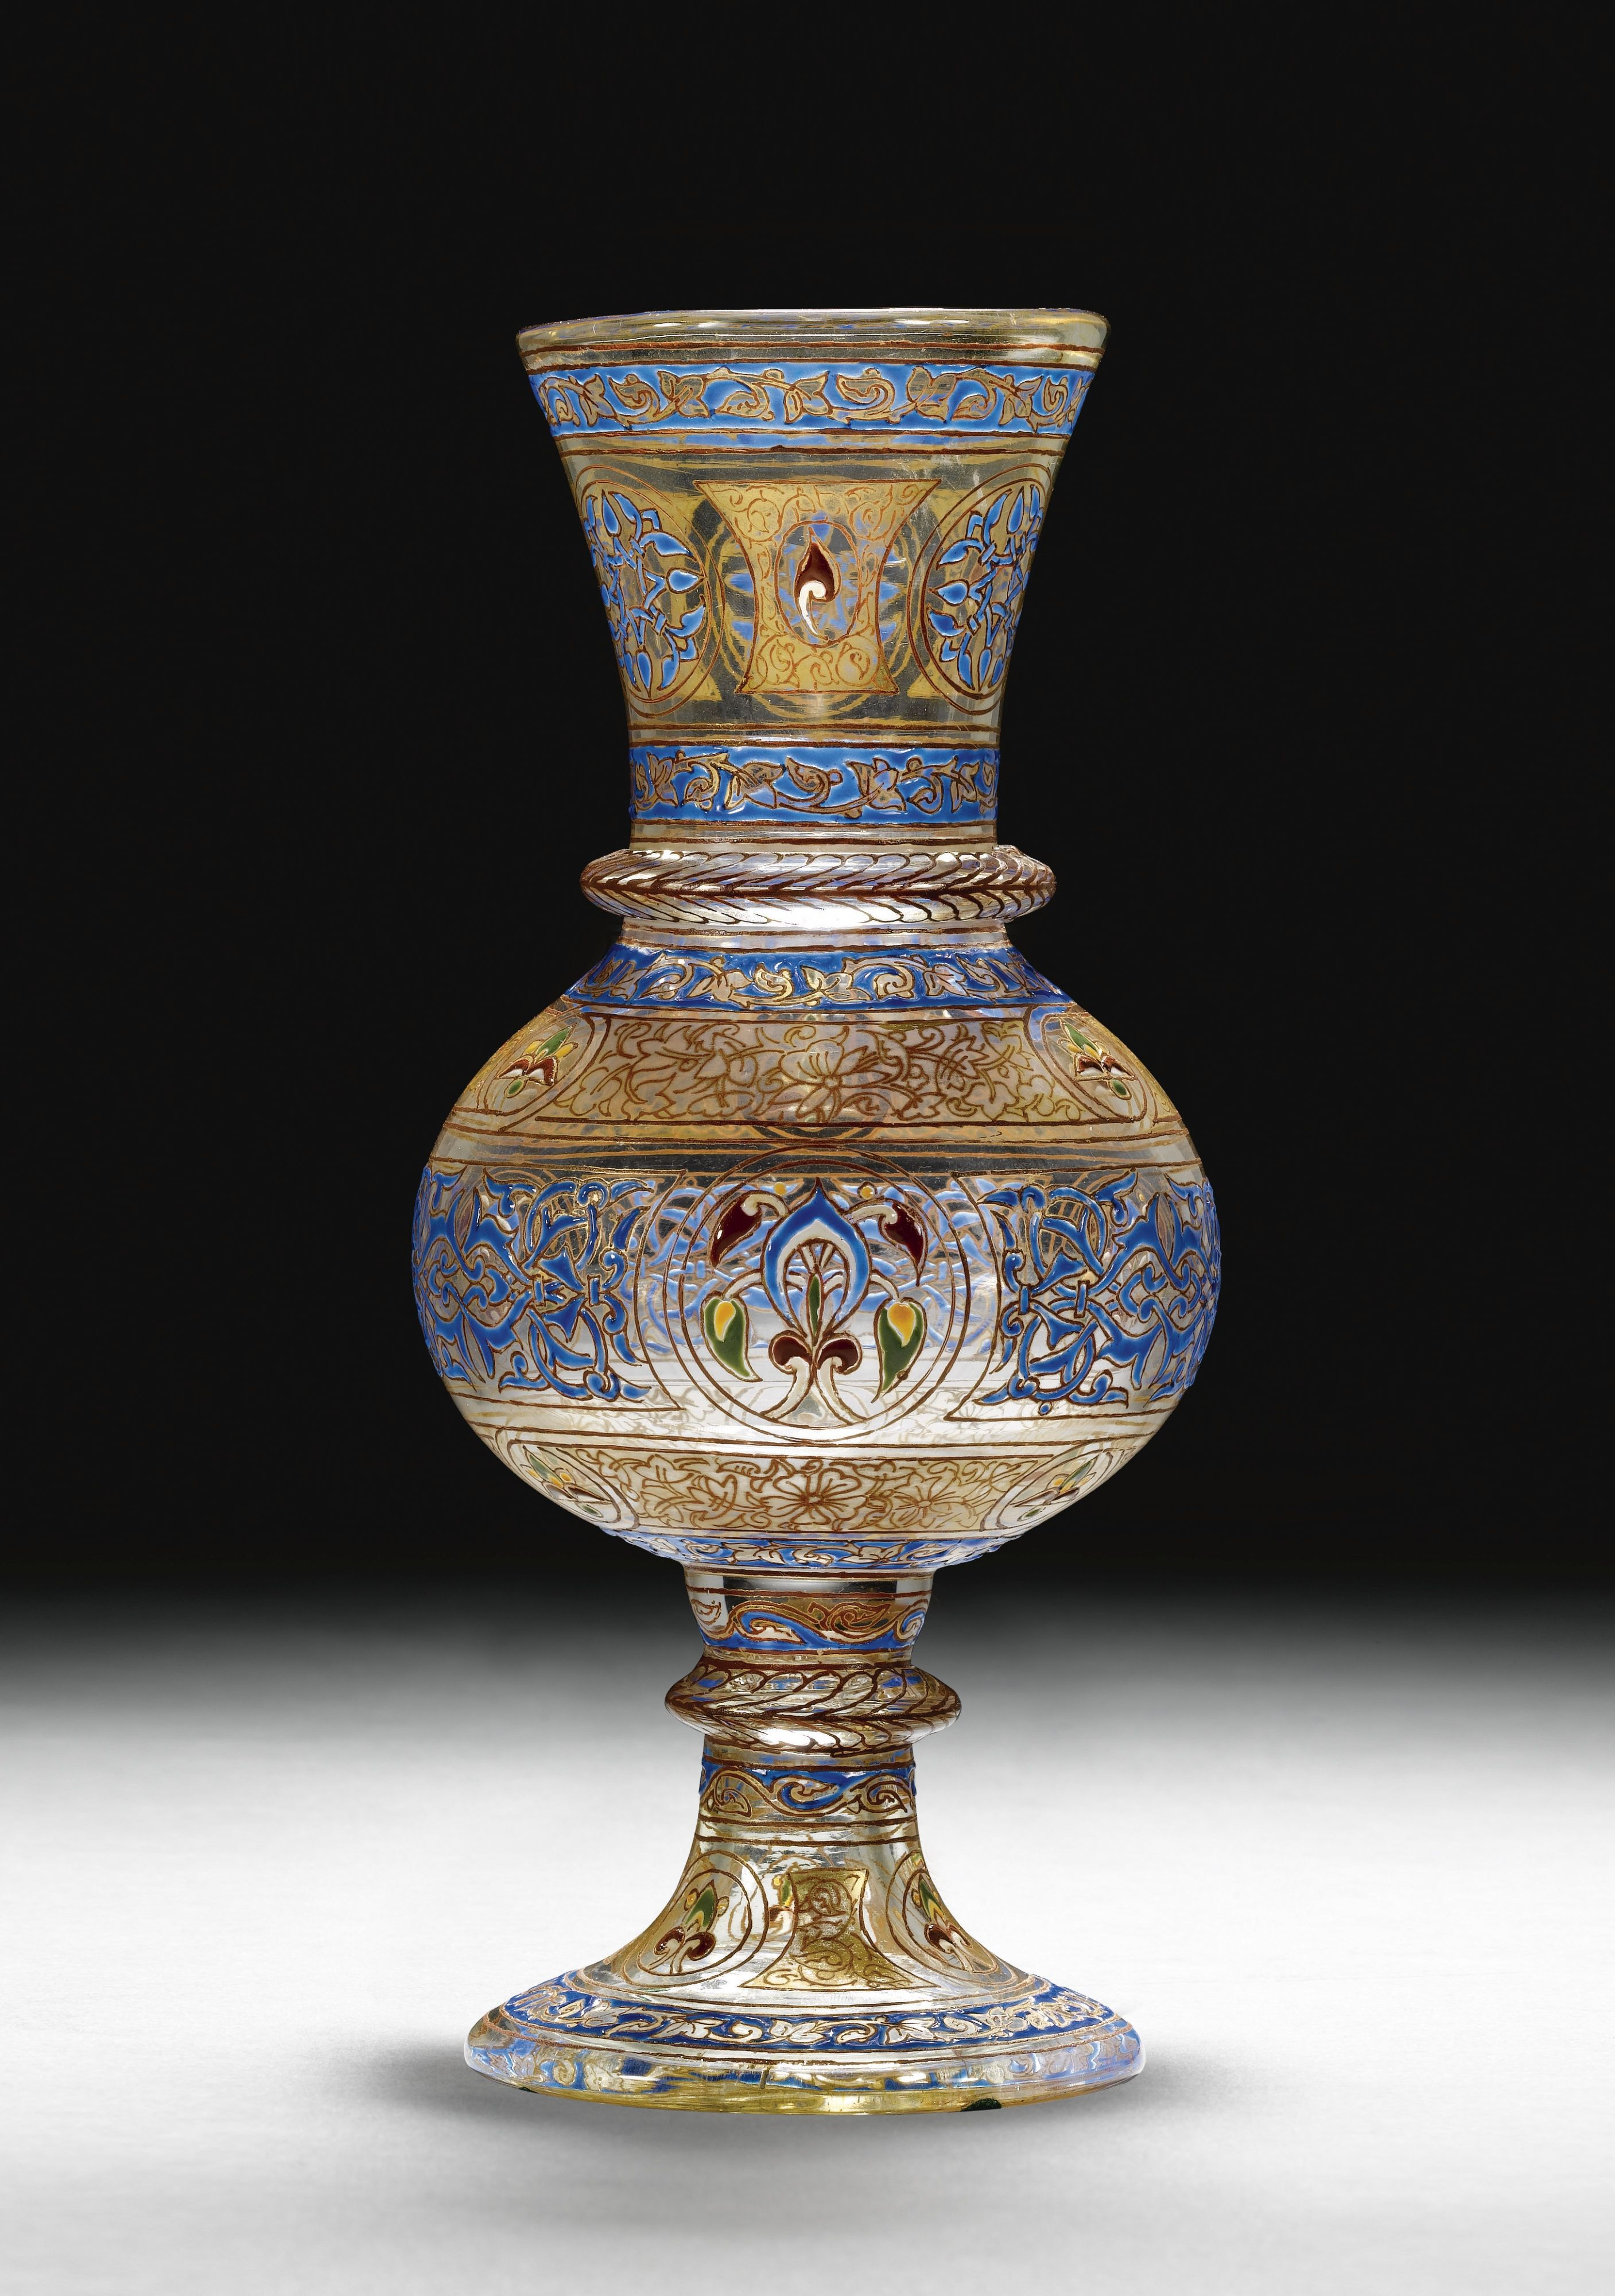 A Brocard gilded and enamelled Mamluk revival vase, signed and dated Paris 1886 | Lot | Sotheby's